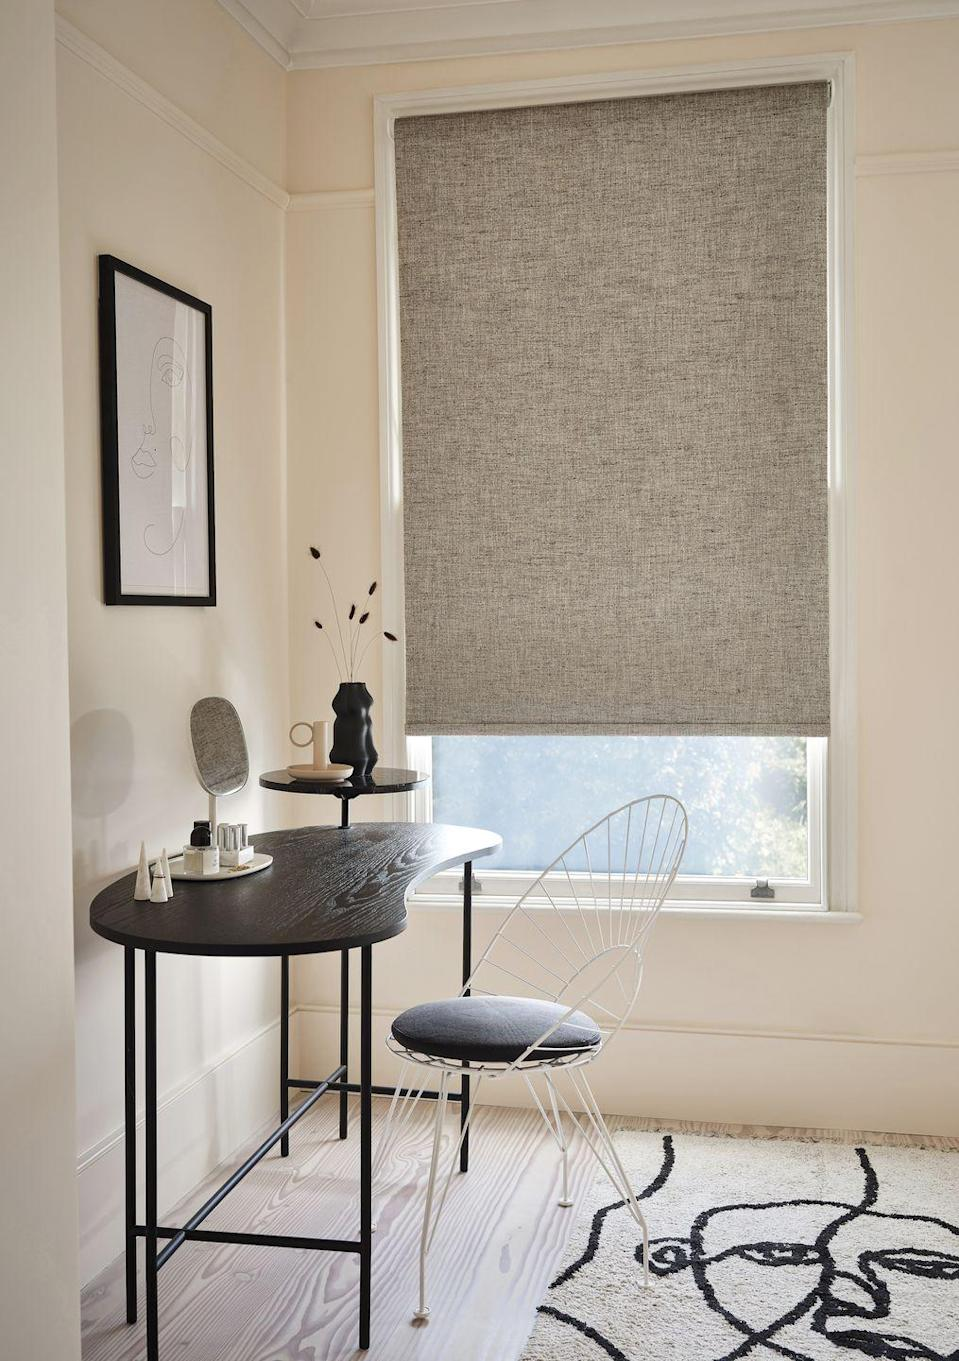 "<p>This delicately textured blind, Austin Sea Salt, will fill a room with instant tranquility. The graininess of this fabric allows the natural light to filter through into your room beautifully, while still allowing you to maintain privacy.</p><p>Austin Sea Salt is a soft roller blind, but what makes soft rollers so special? They have all the practical benefits of our standard rollers but with a soft, tactile feel of a fabric.</p><p><a class=""link rapid-noclick-resp"" href=""https://www.hillarys.co.uk/products/austin-sea-salt-roller-blind/"" rel=""nofollow noopener"" target=""_blank"" data-ylk=""slk:Order a sample and request an appointment"">Order a sample and request an appointment</a></p>"